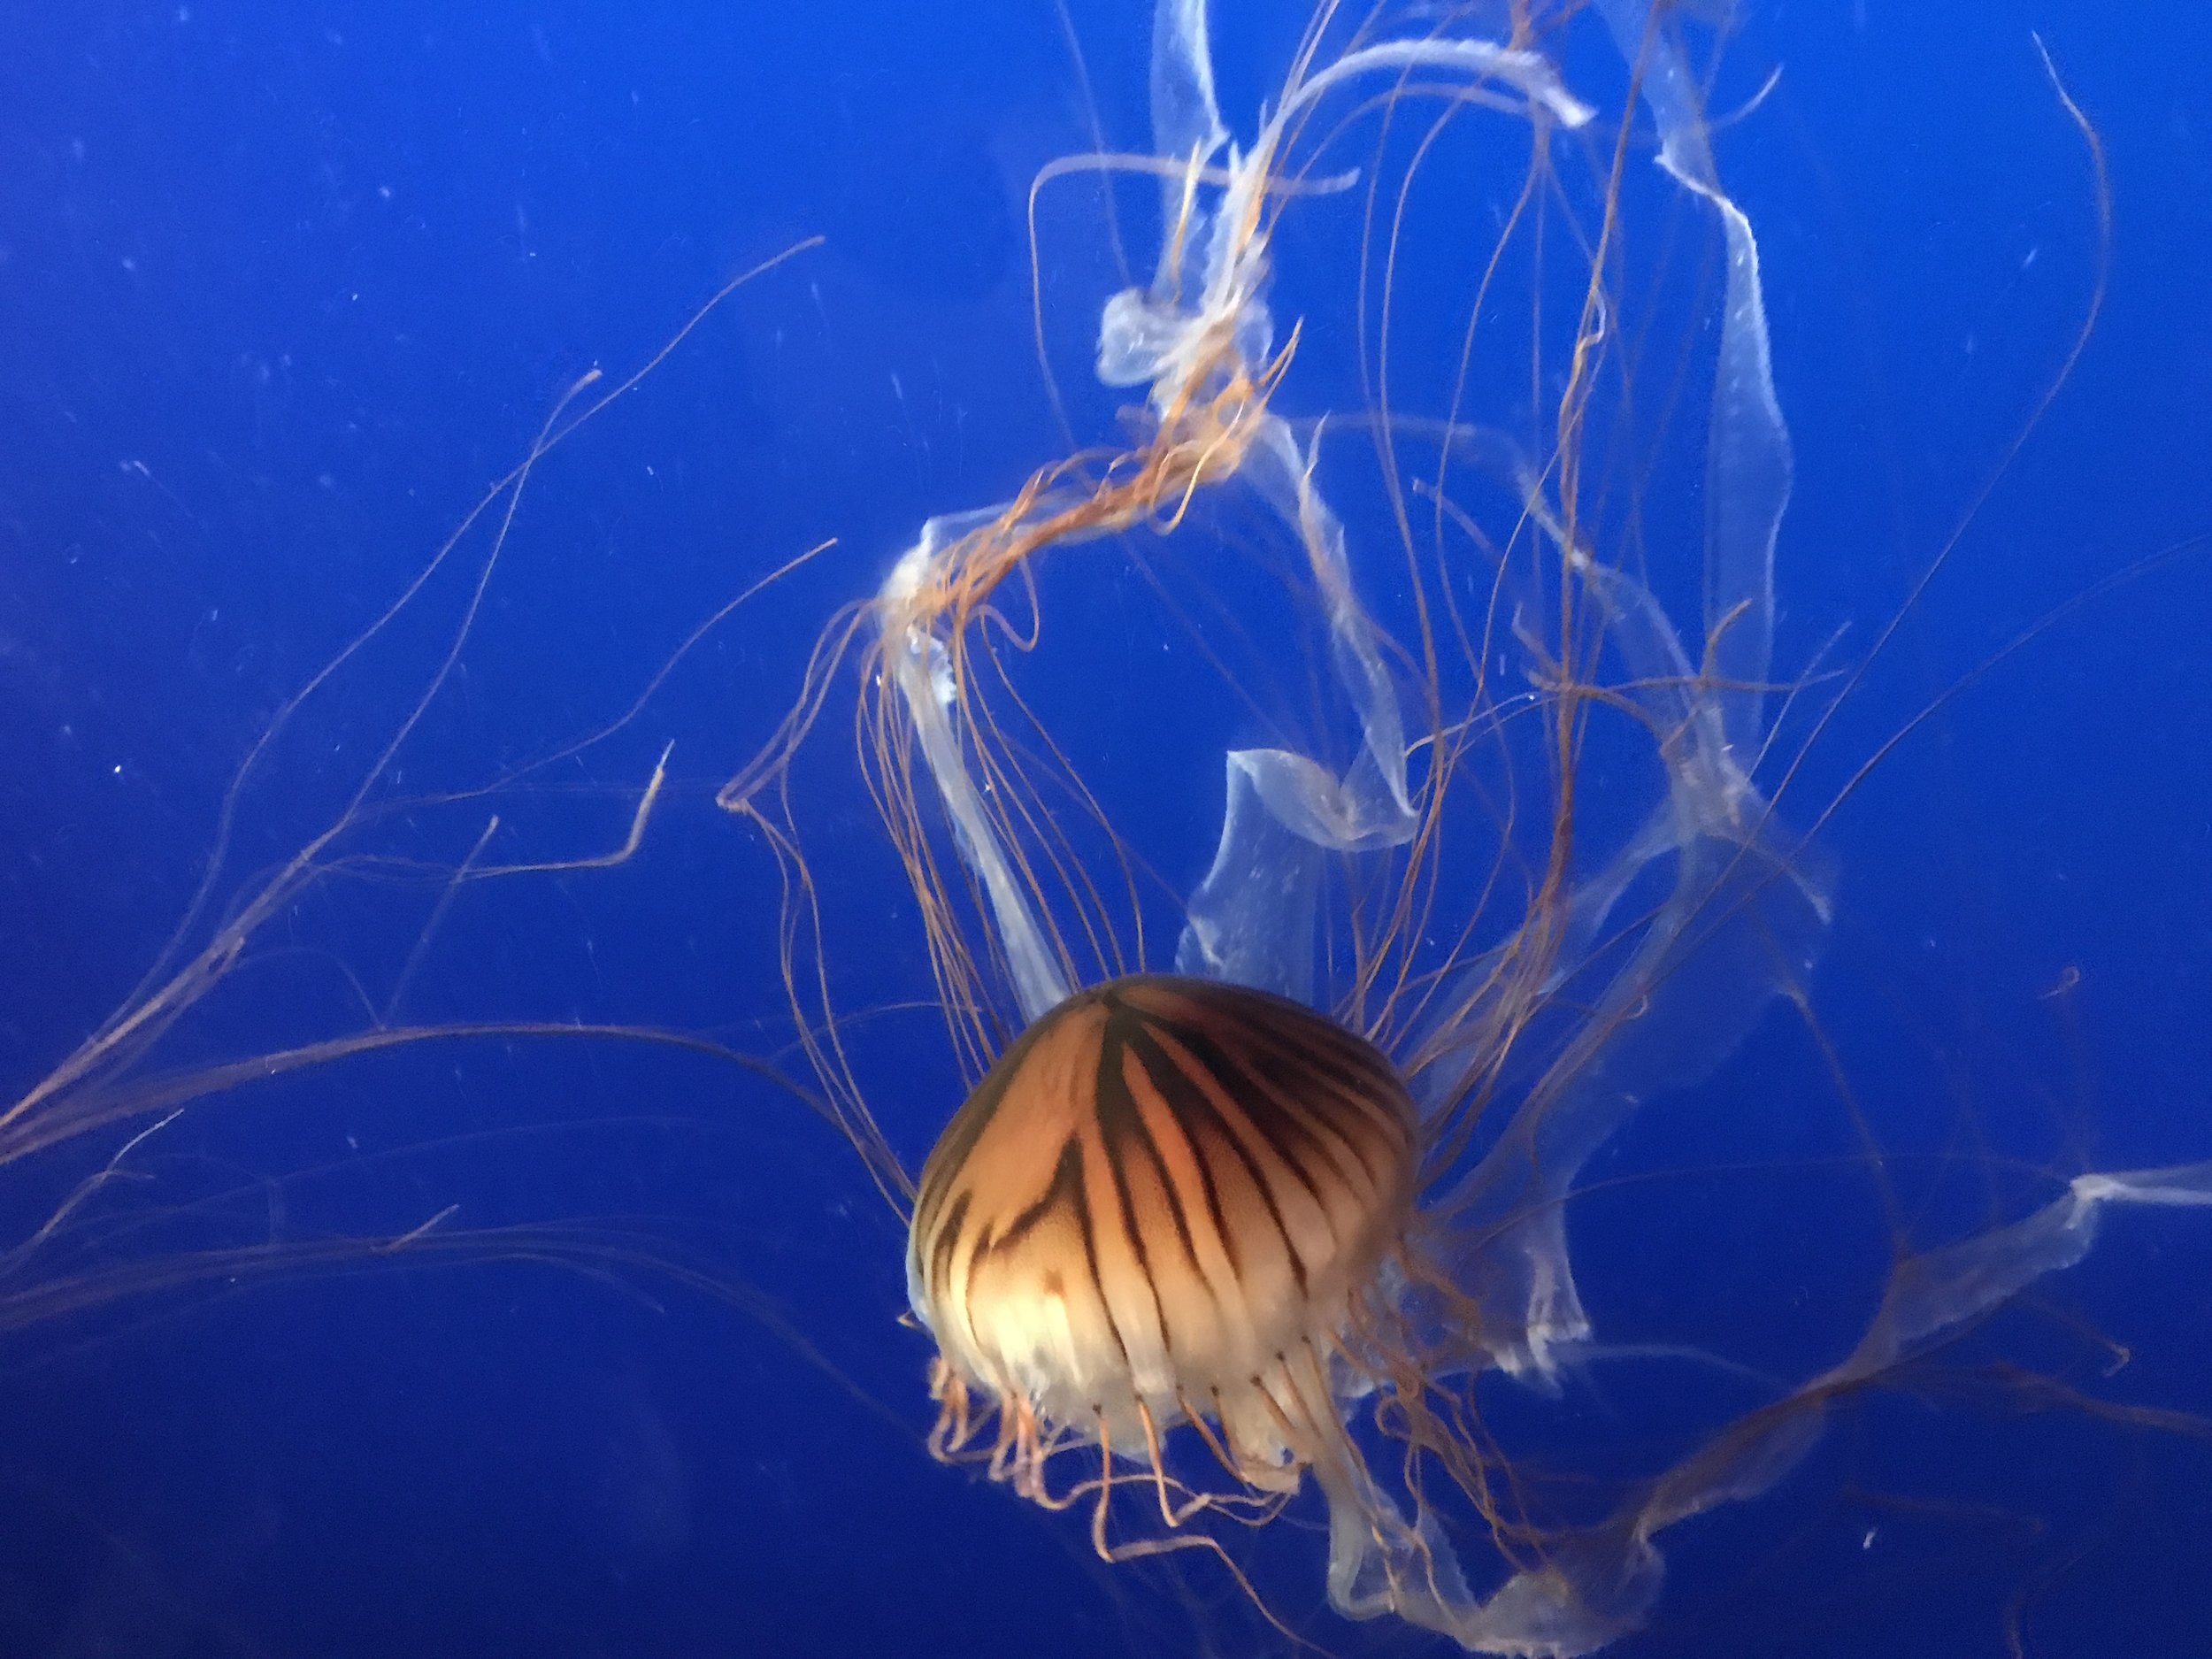 Jelly Fish - The most beautiful were the jelly fish